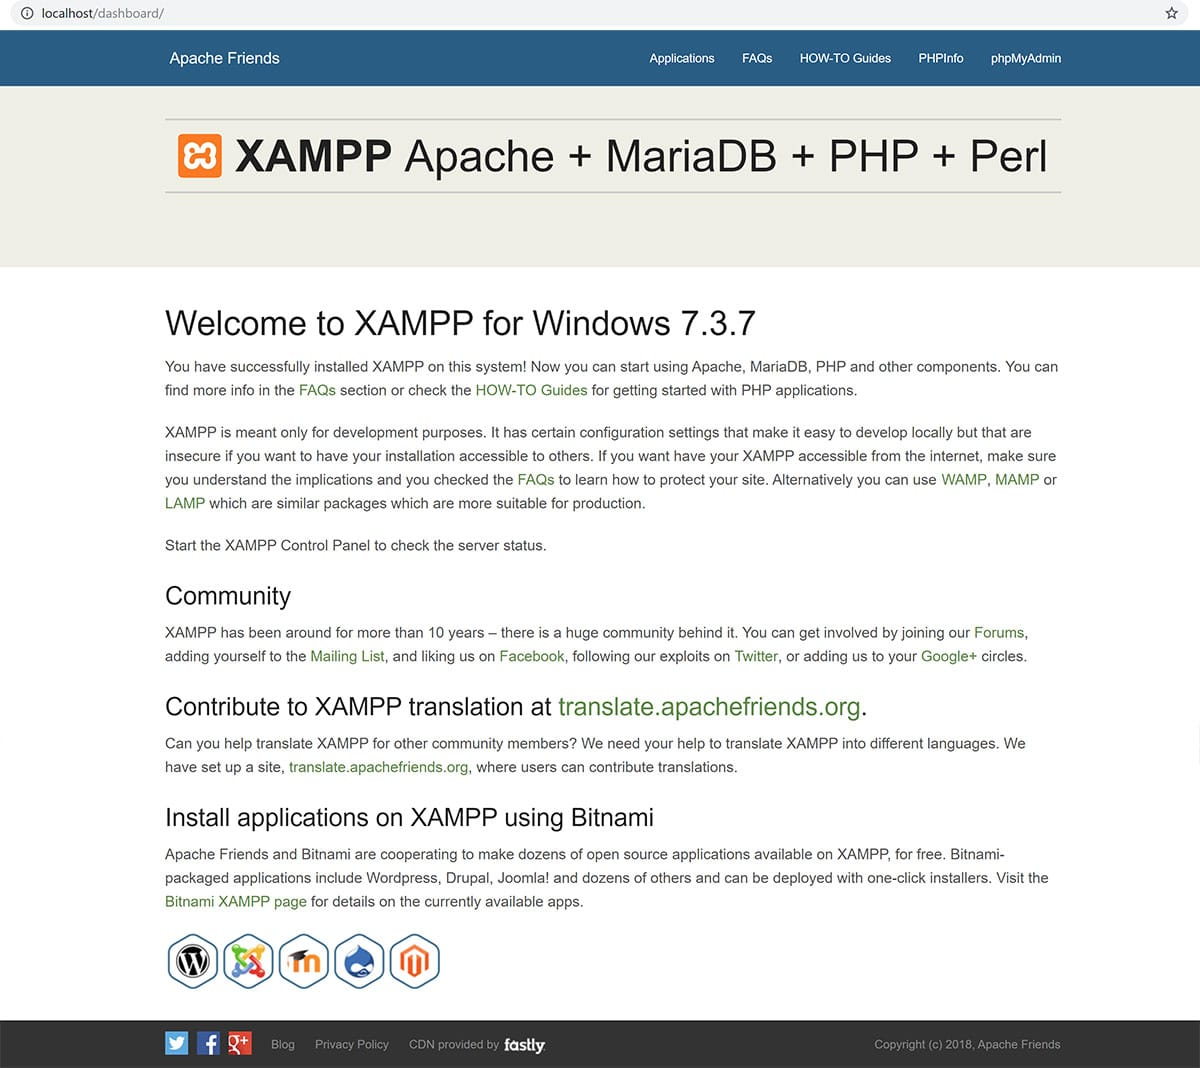 XAMPP local homepage